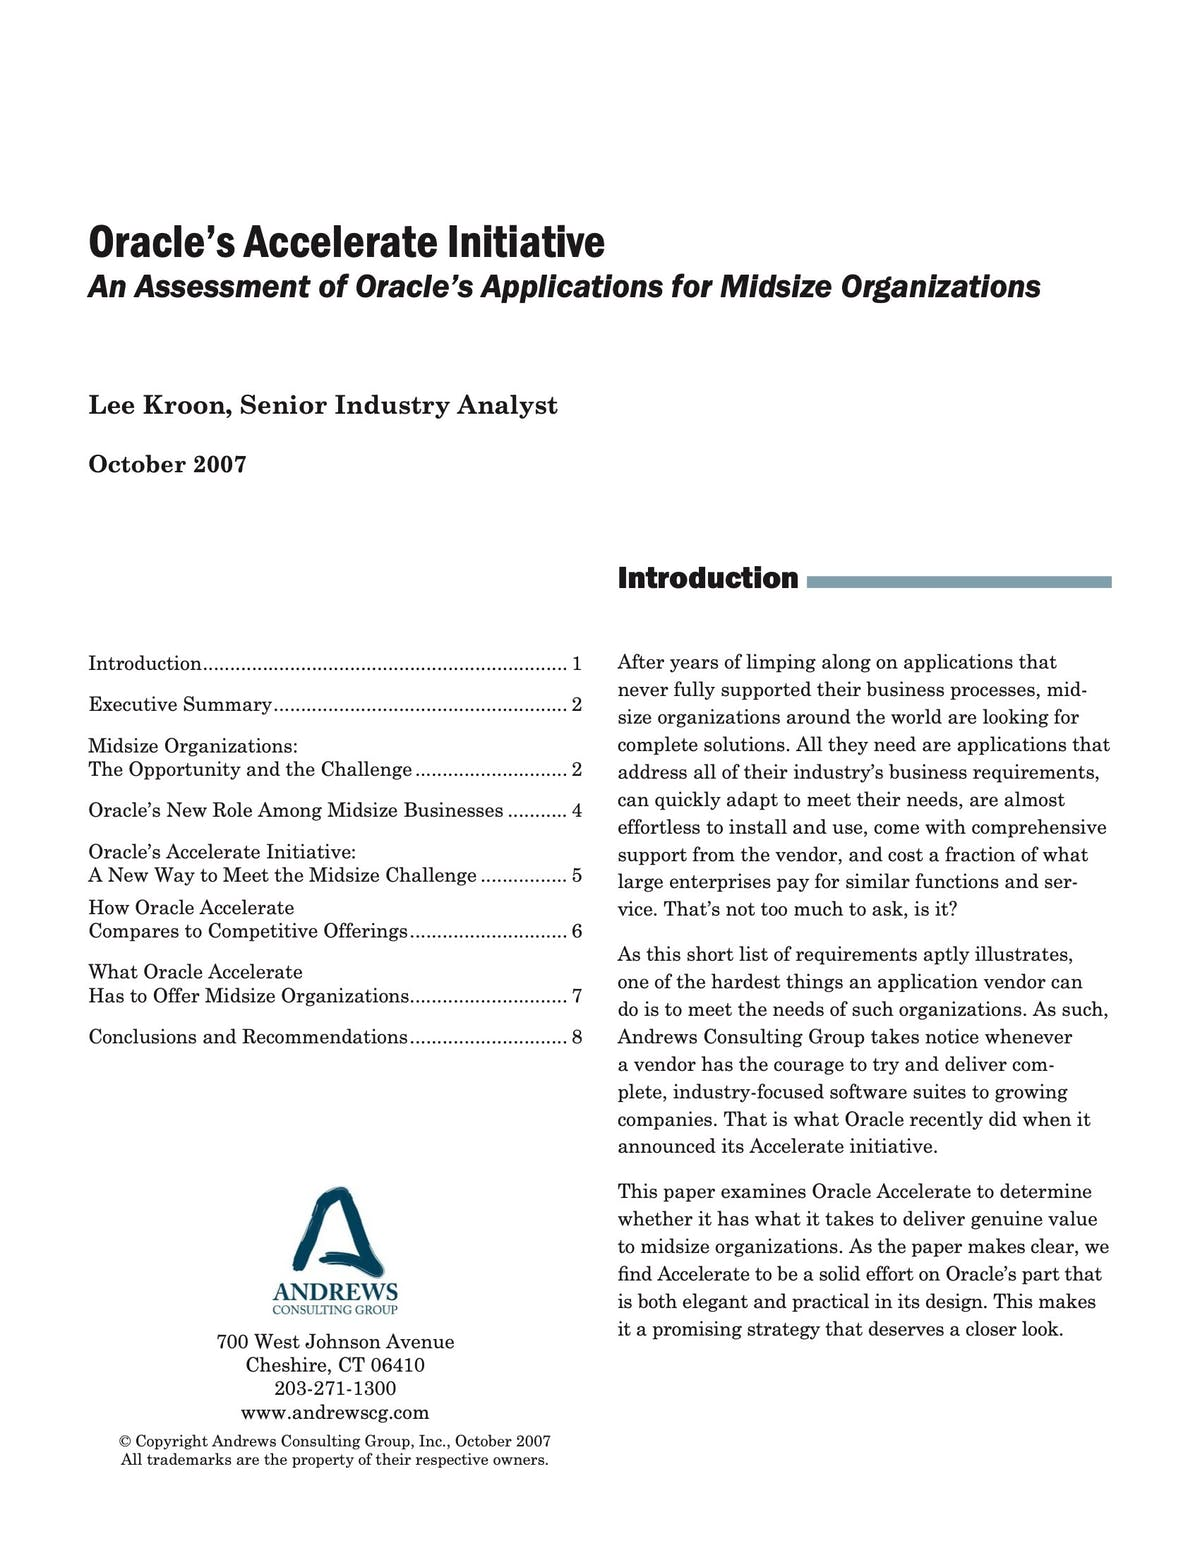 Oracle E-Business Suite White Paper - Oracle's Accelerate Initiative